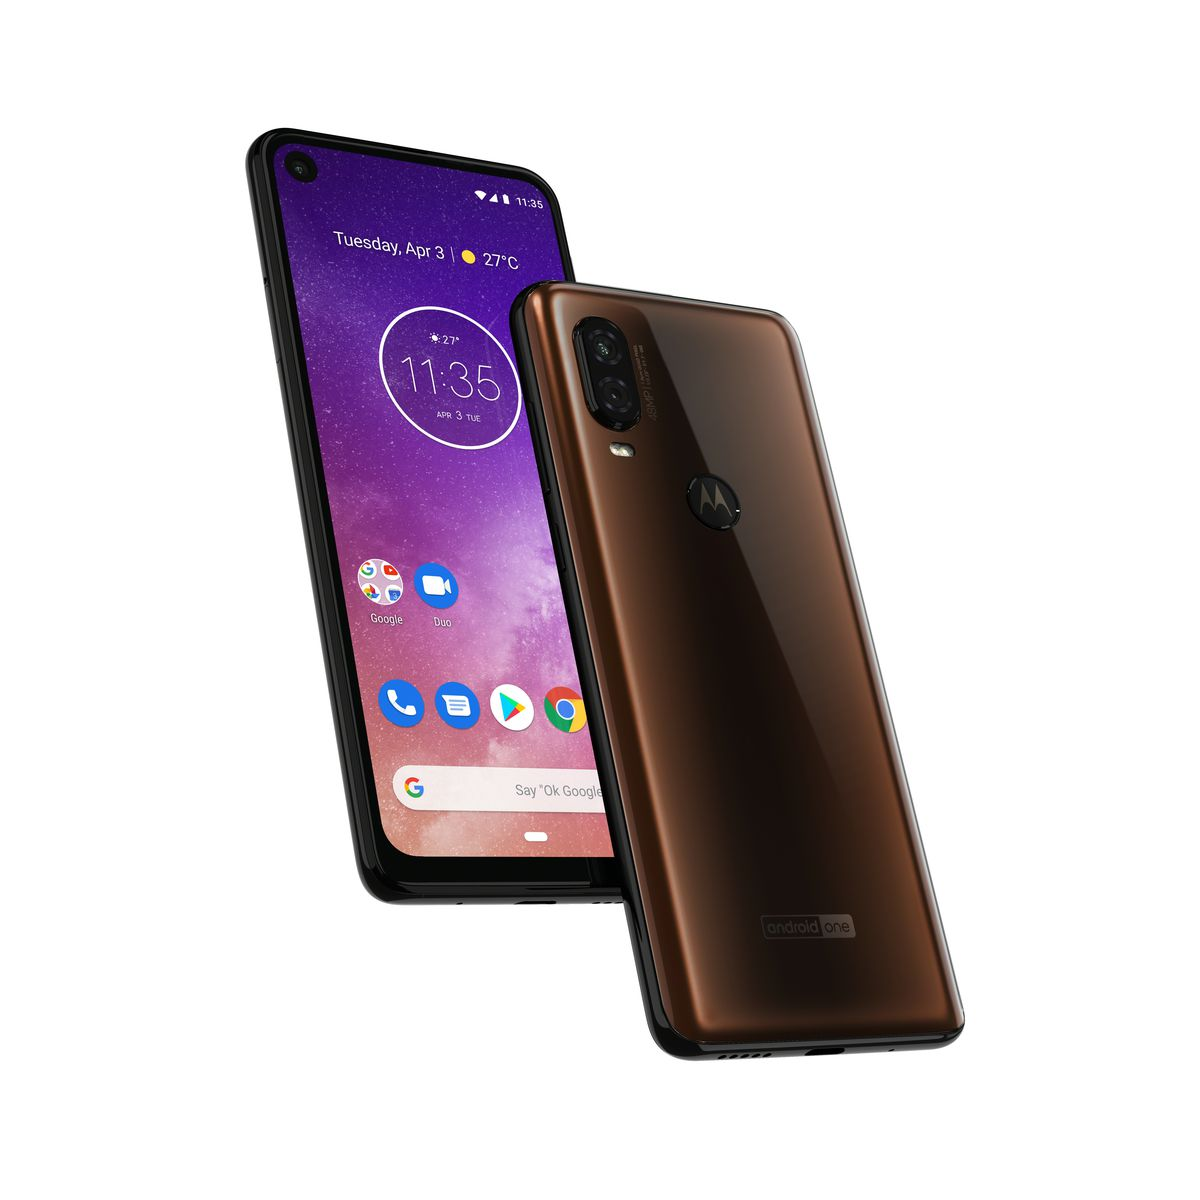 the motorola one vision has a 219 screen and looks less like an iphone clone